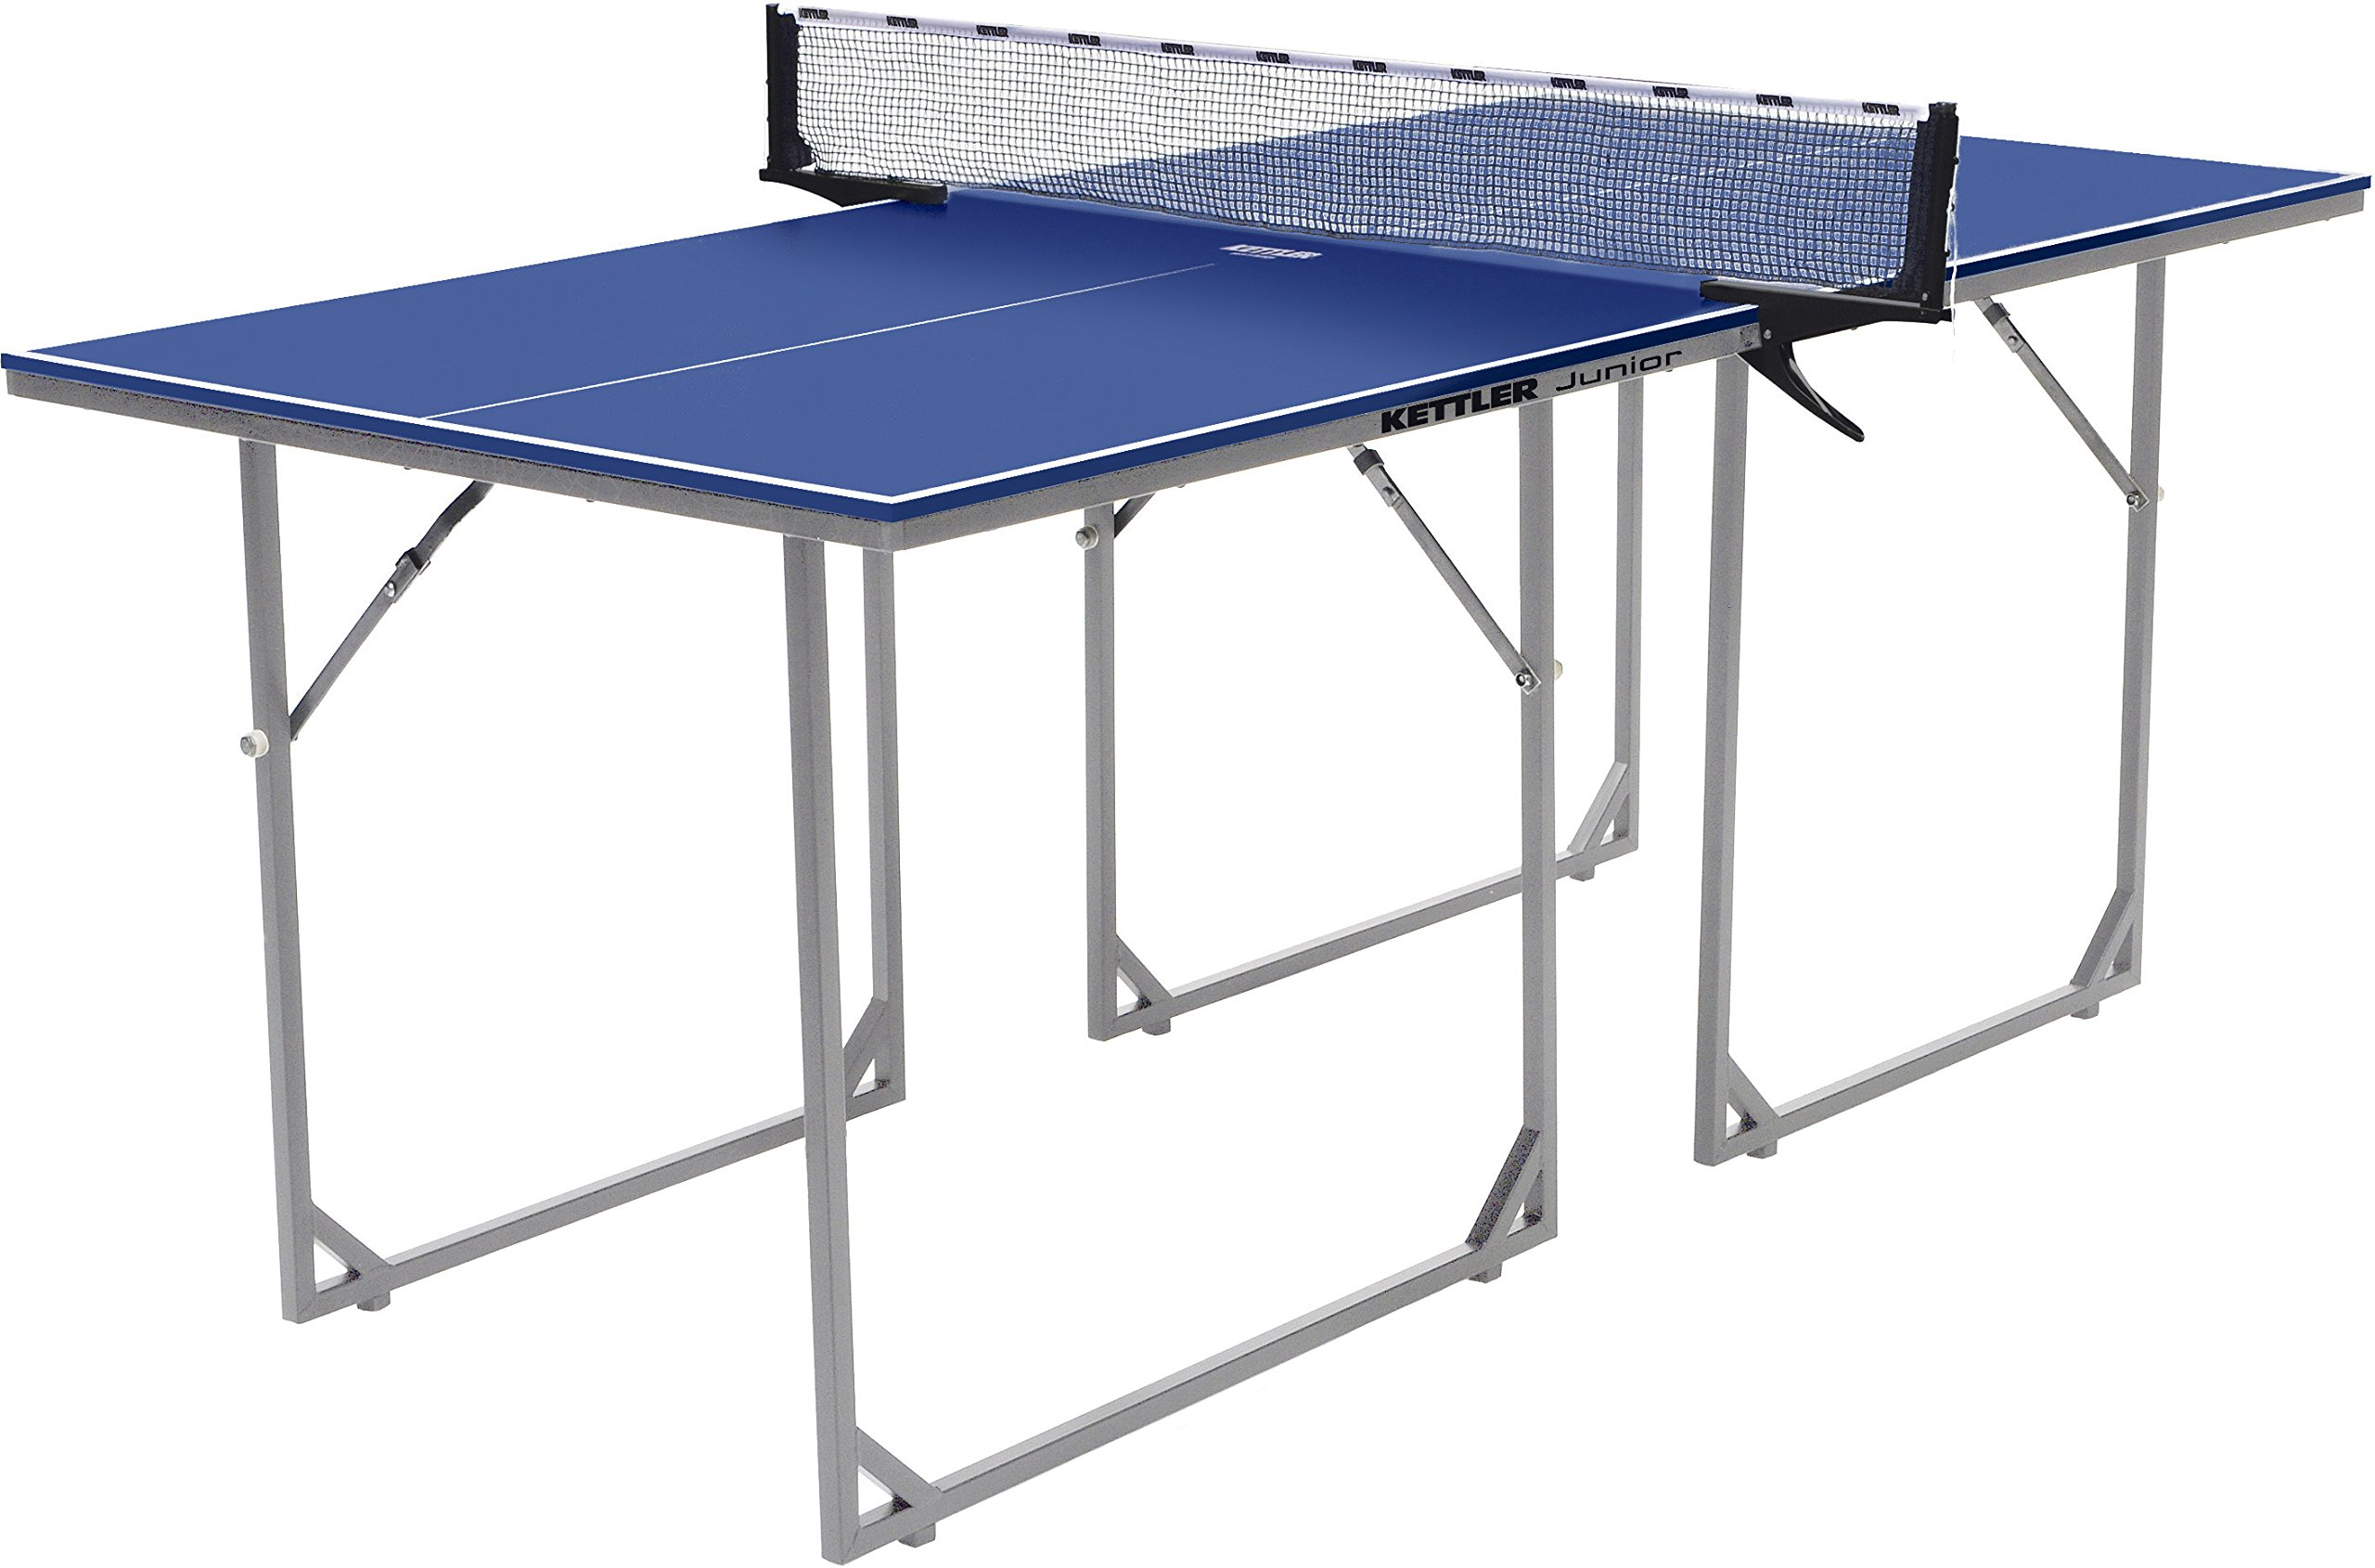 Kettler junior table tennis table ebay for Table kettler